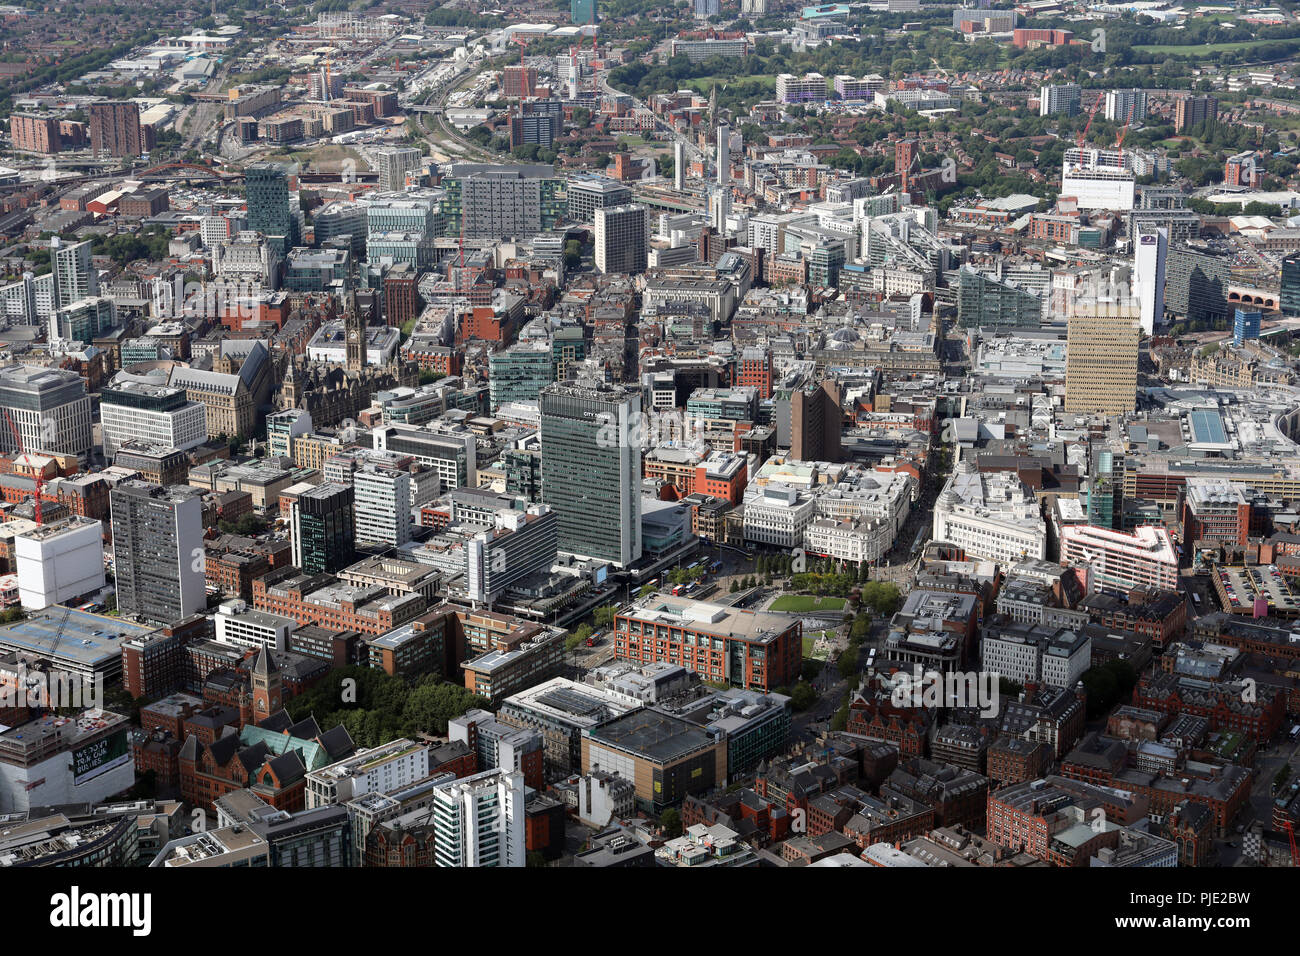 aerial view across Piccadilly Gardens in Manchester city centre, with City Tower office block prominent - Stock Image